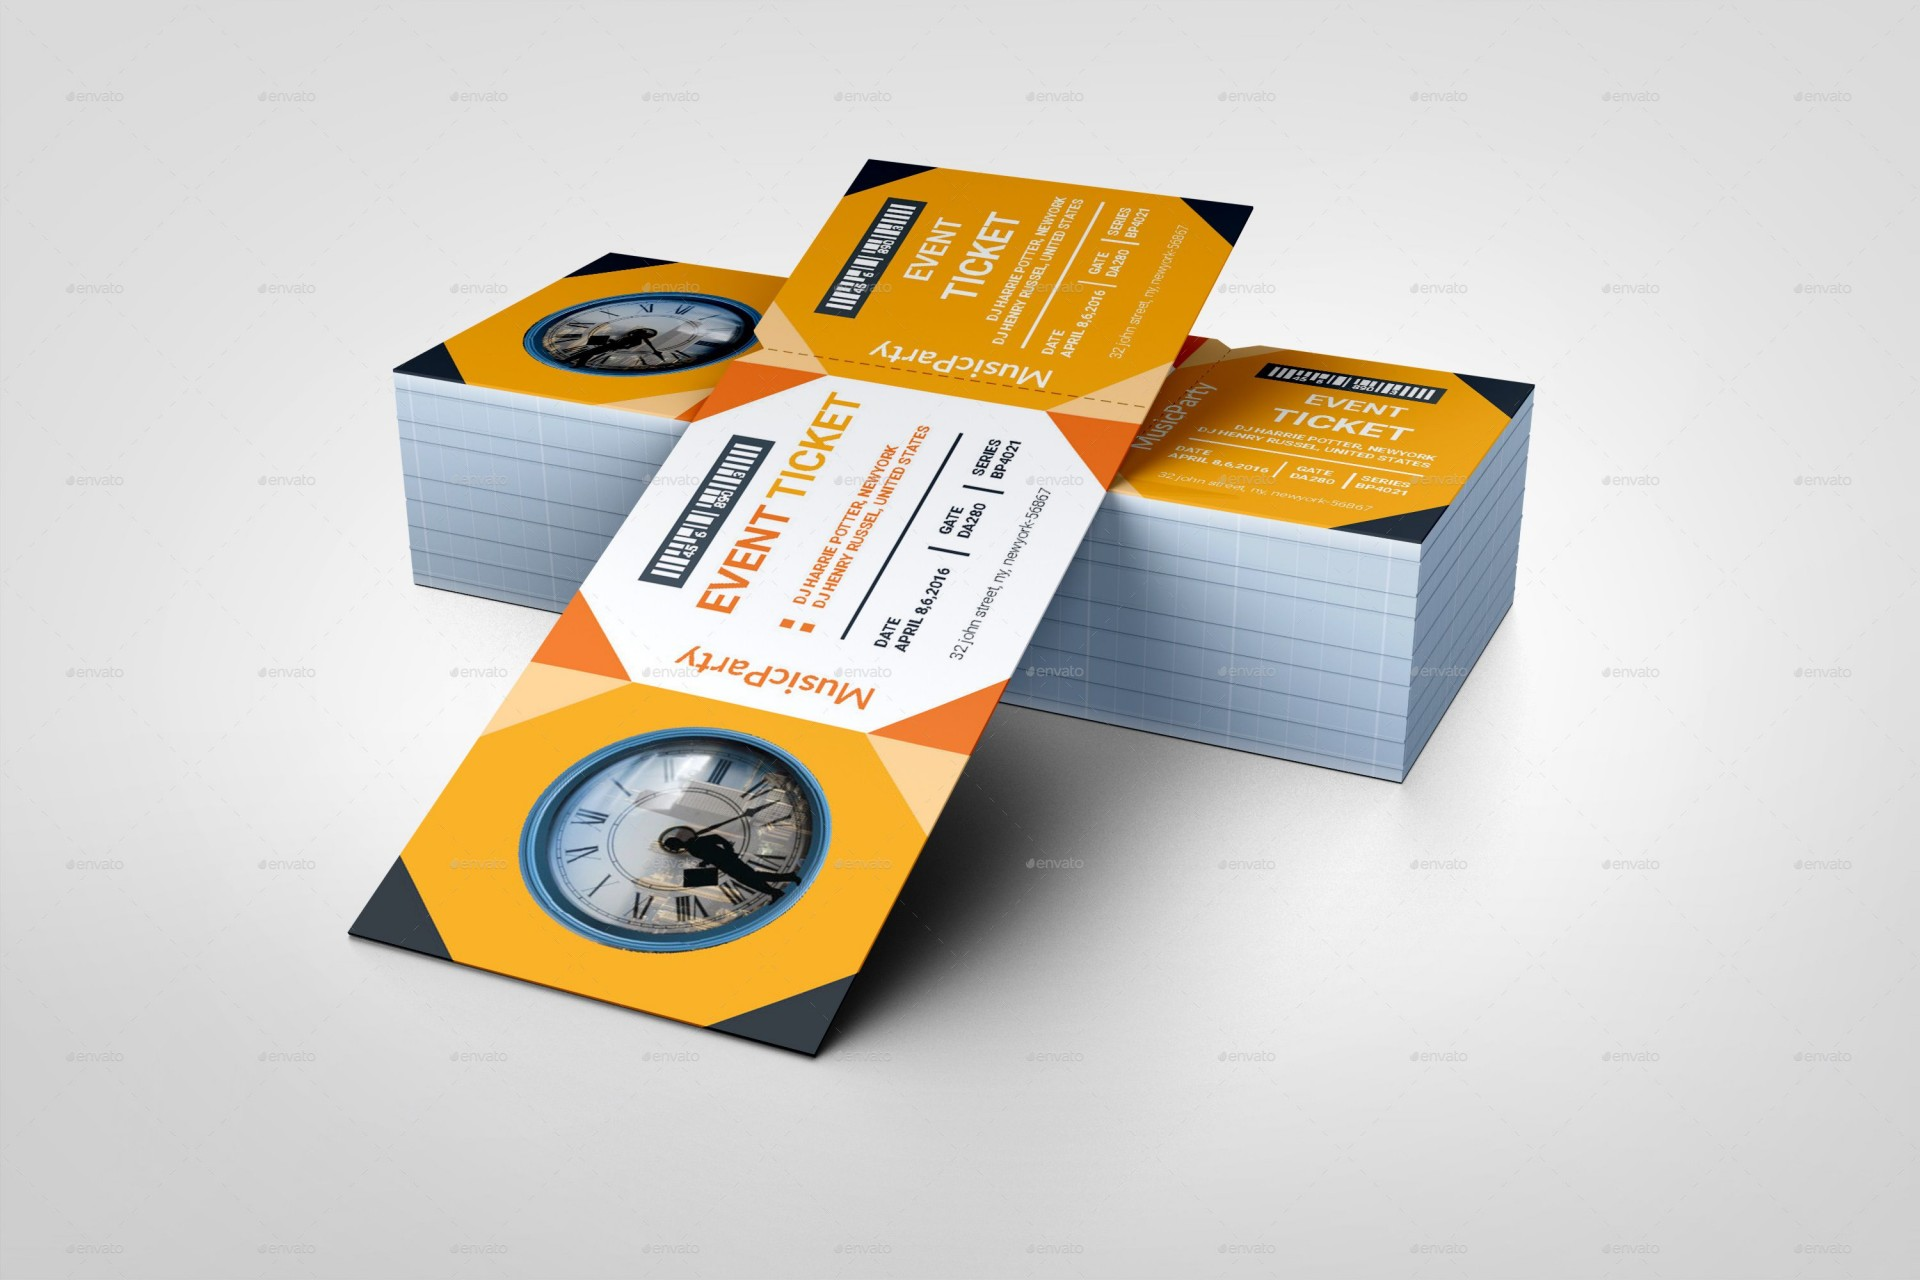 006 Breathtaking Event Ticket Template Photoshop Highest Quality  Design Psd Free Download1920